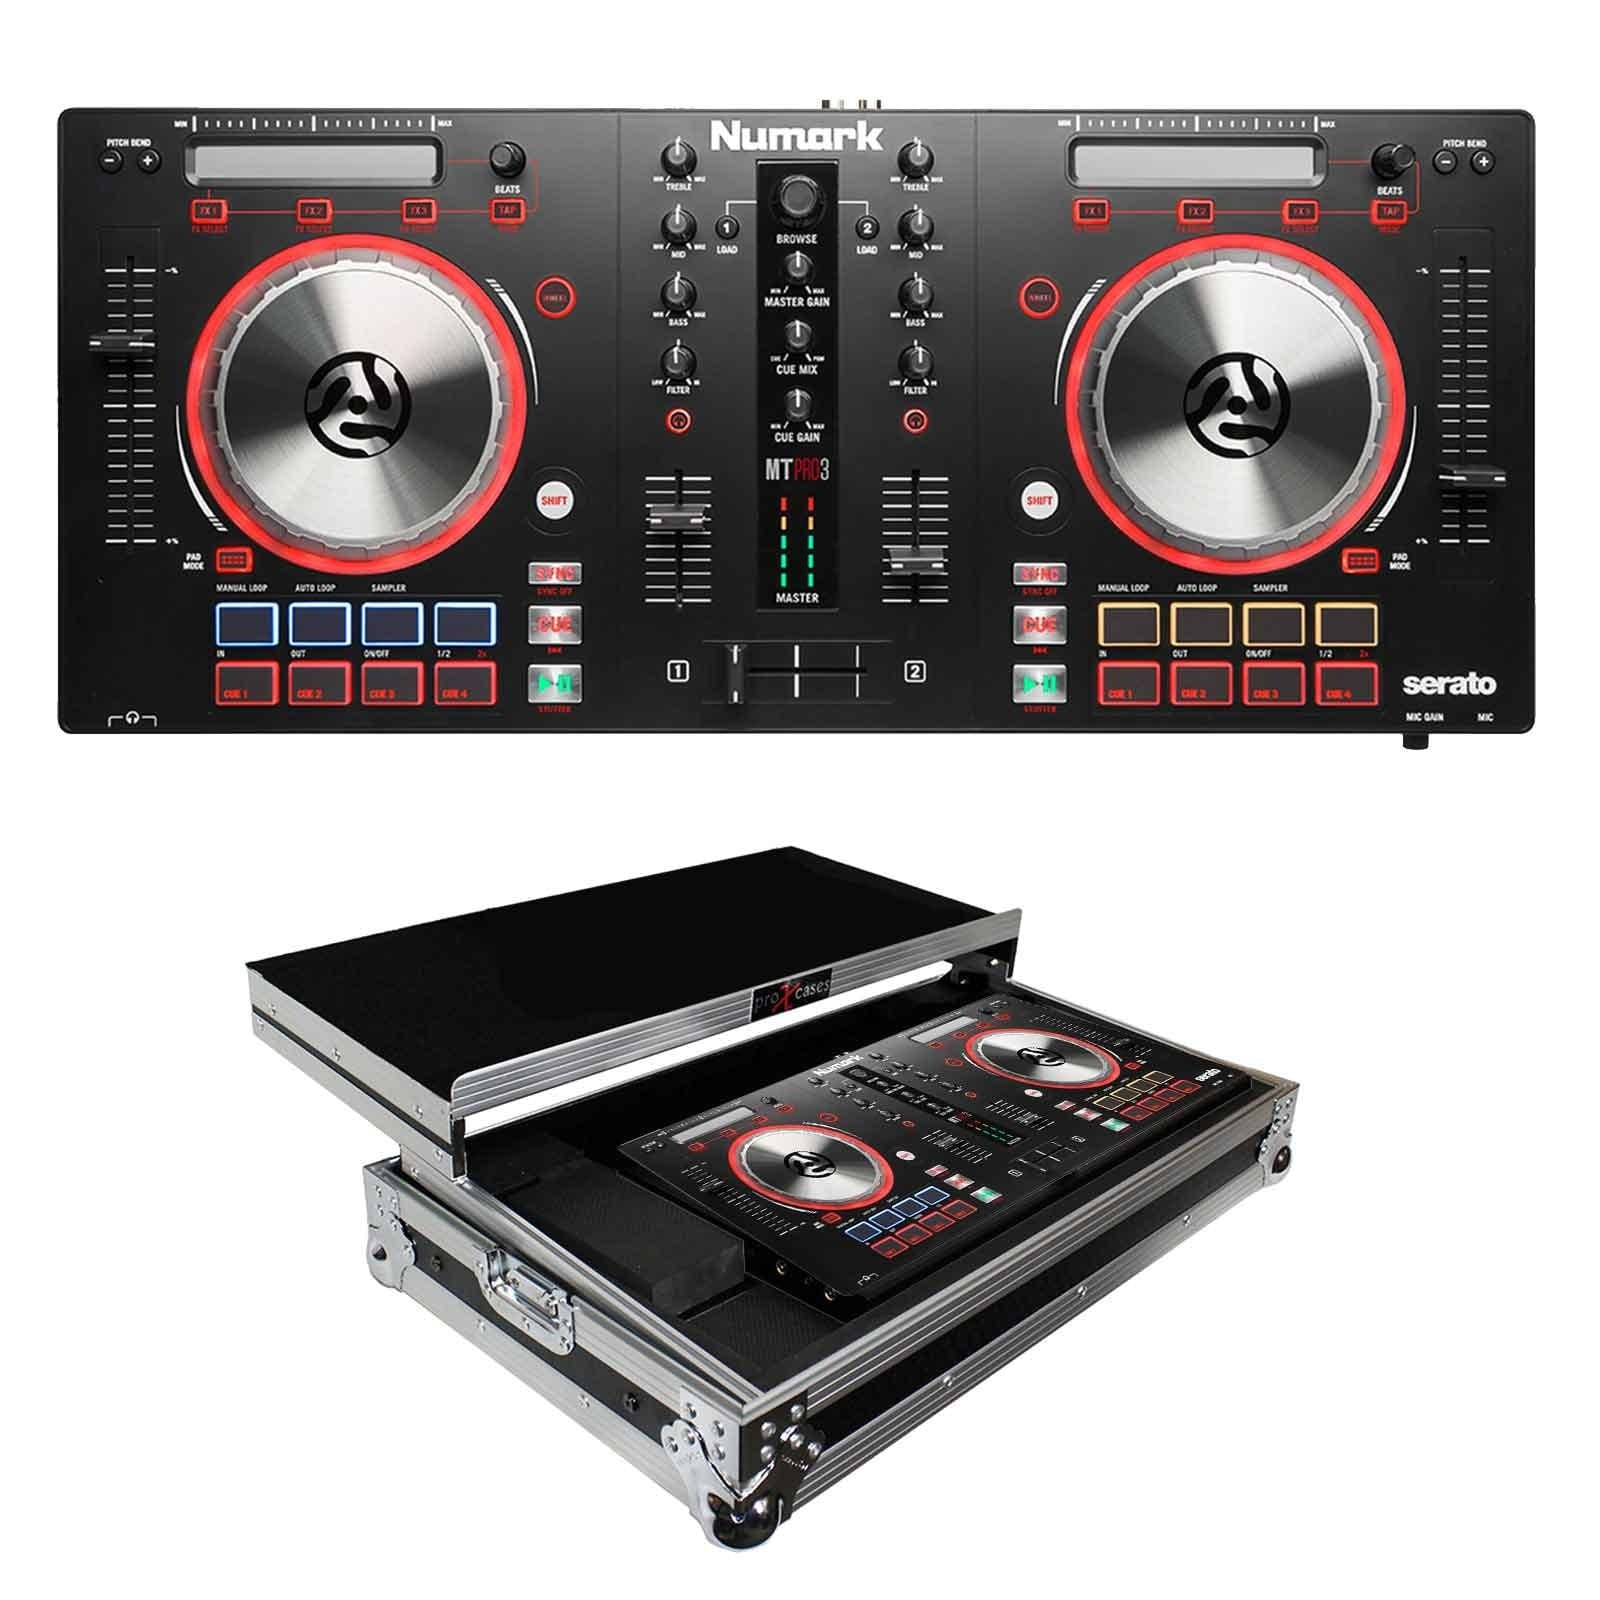 numark-mixtrack-pro-3-all-in-one-controller-flight-case-package-bb5